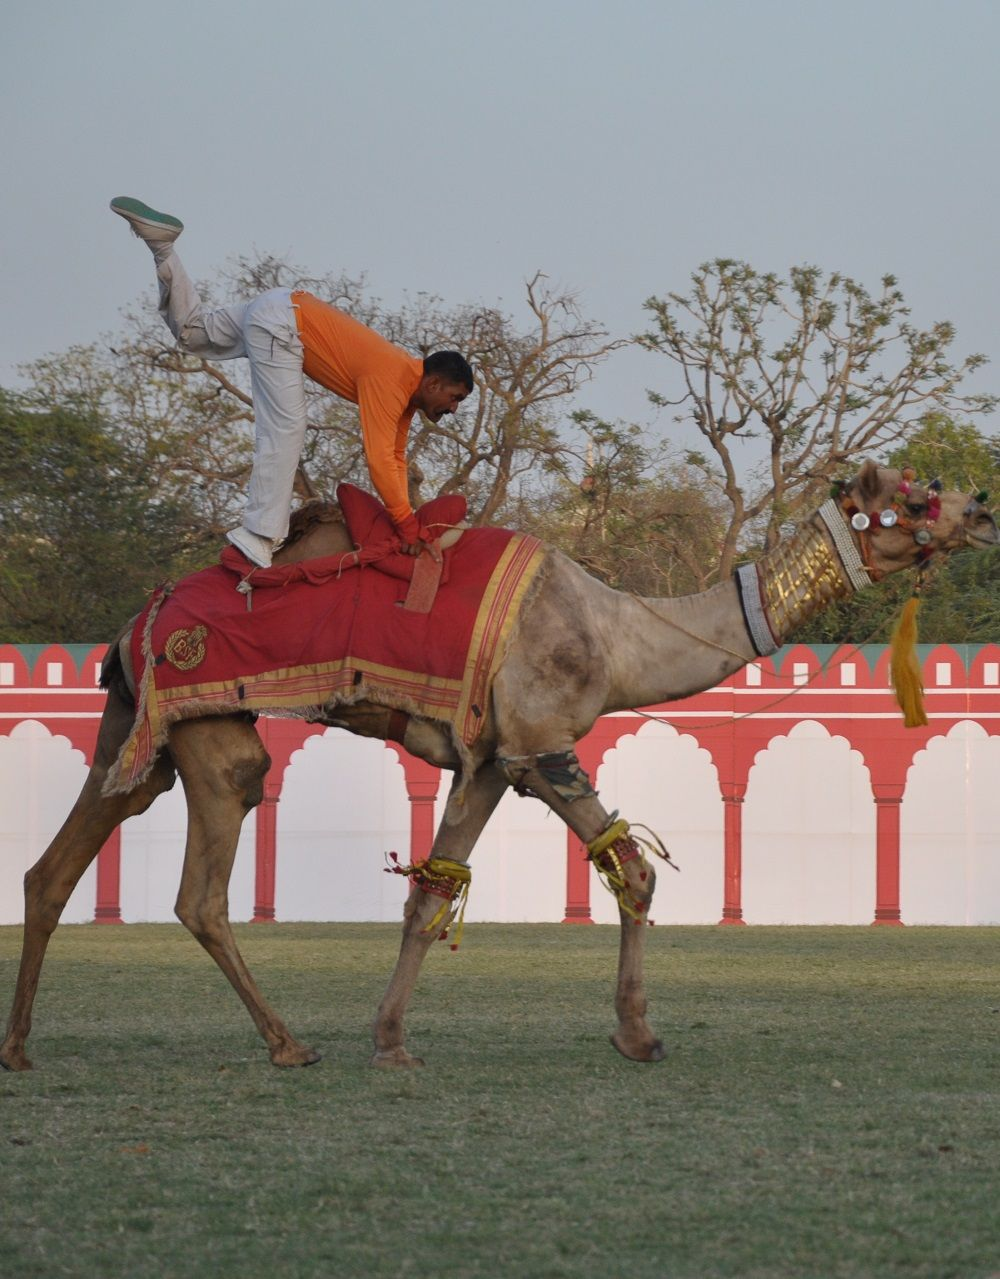 Rajasthan Diwas 2016 - A camel tattoo event organized to honor the ship of the desert and the state animal 'Camel'.